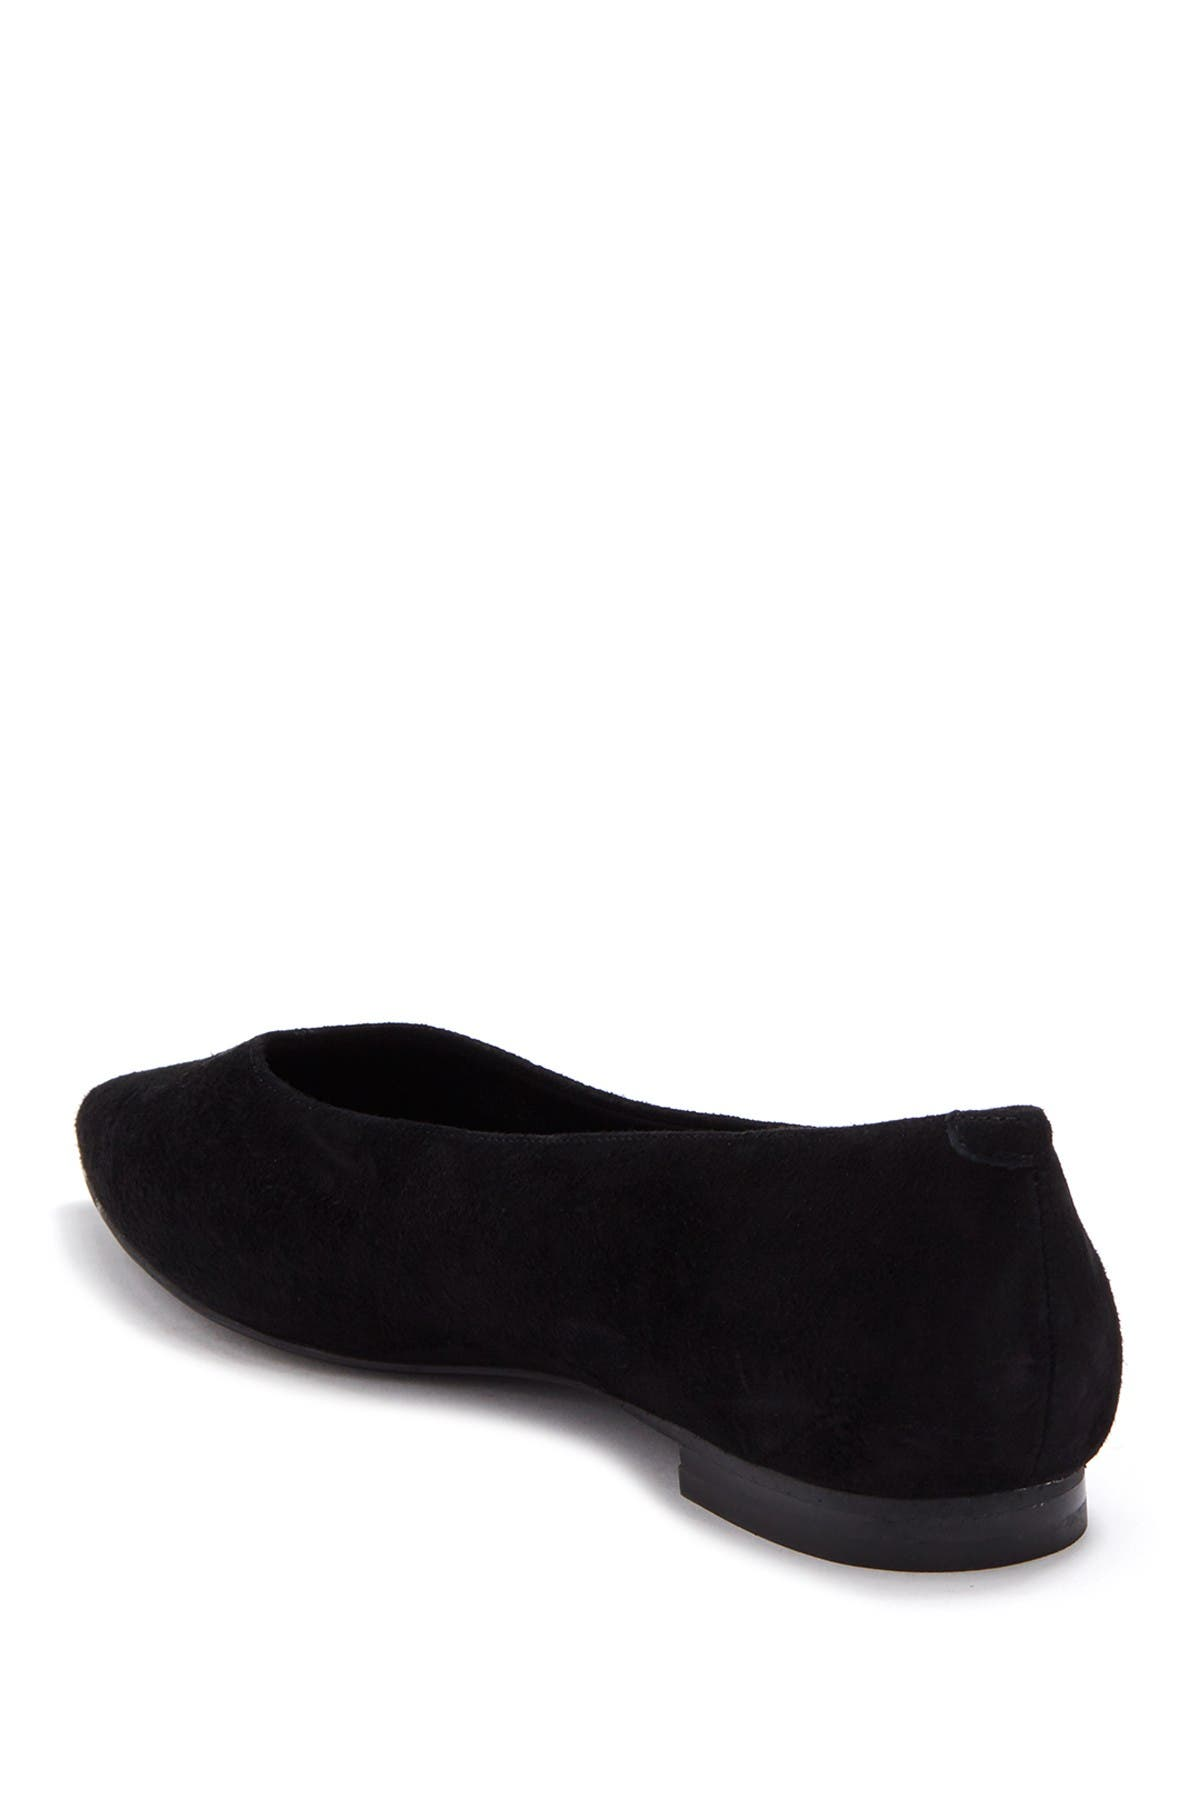 Image of Marc Fisher Altair Pointed Toe Dress Flat